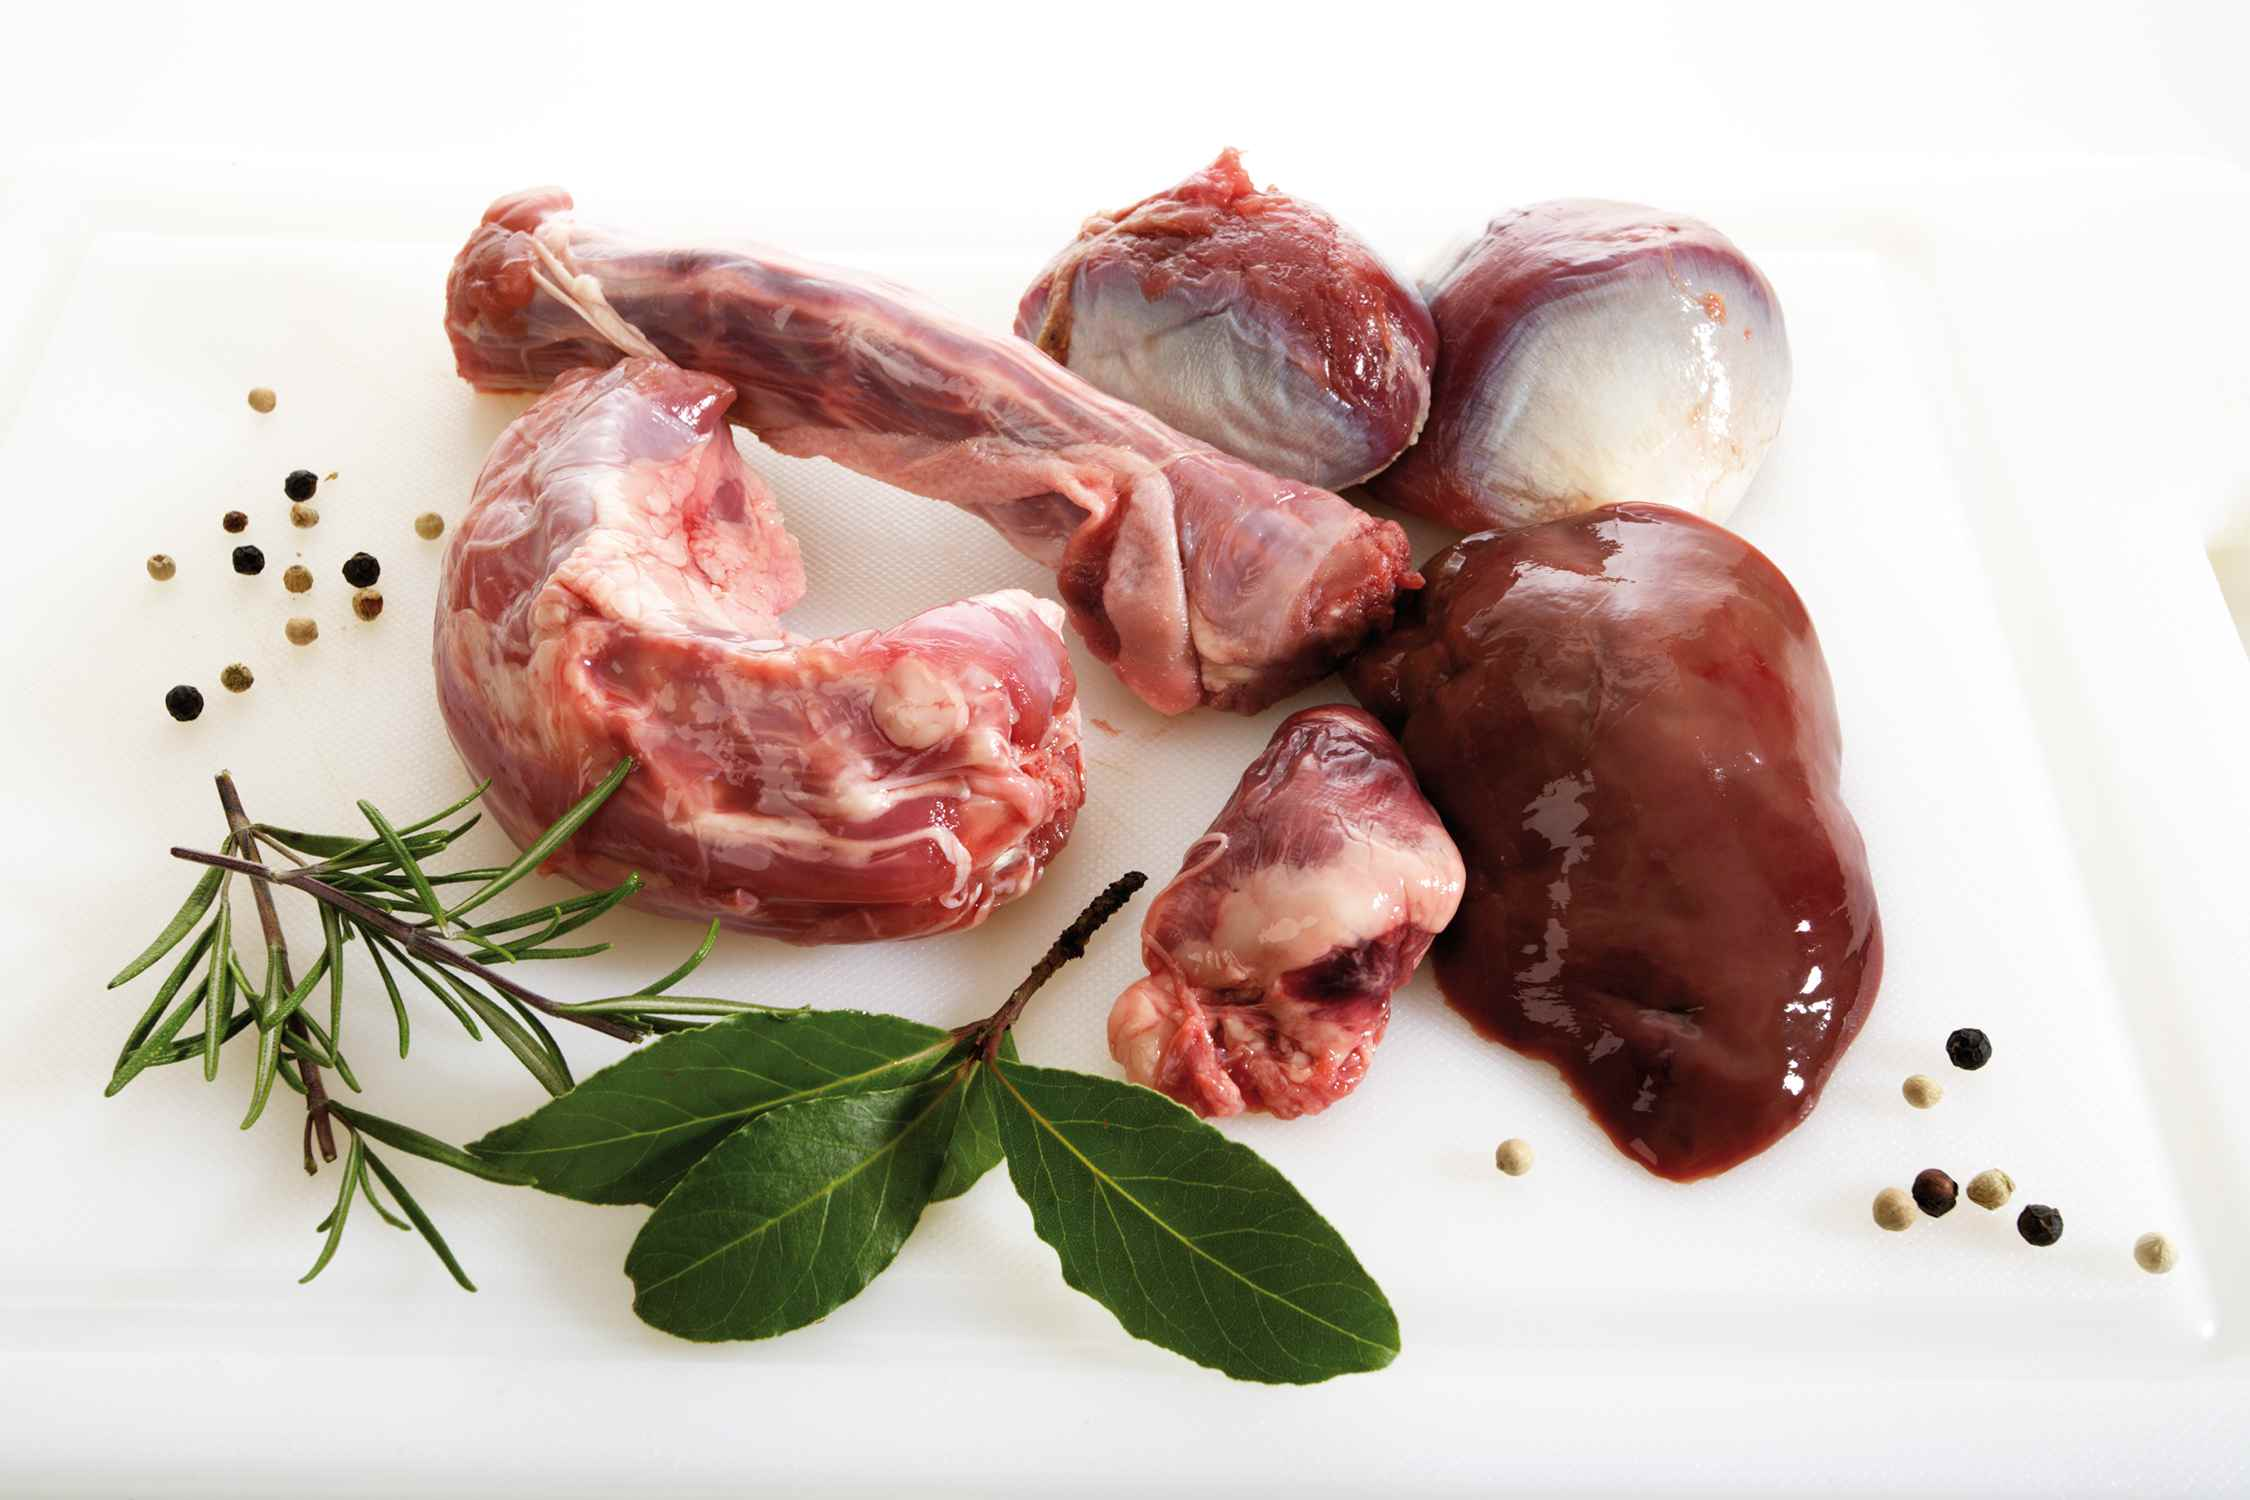 Fowl's neck. gizzard, liver, and heart